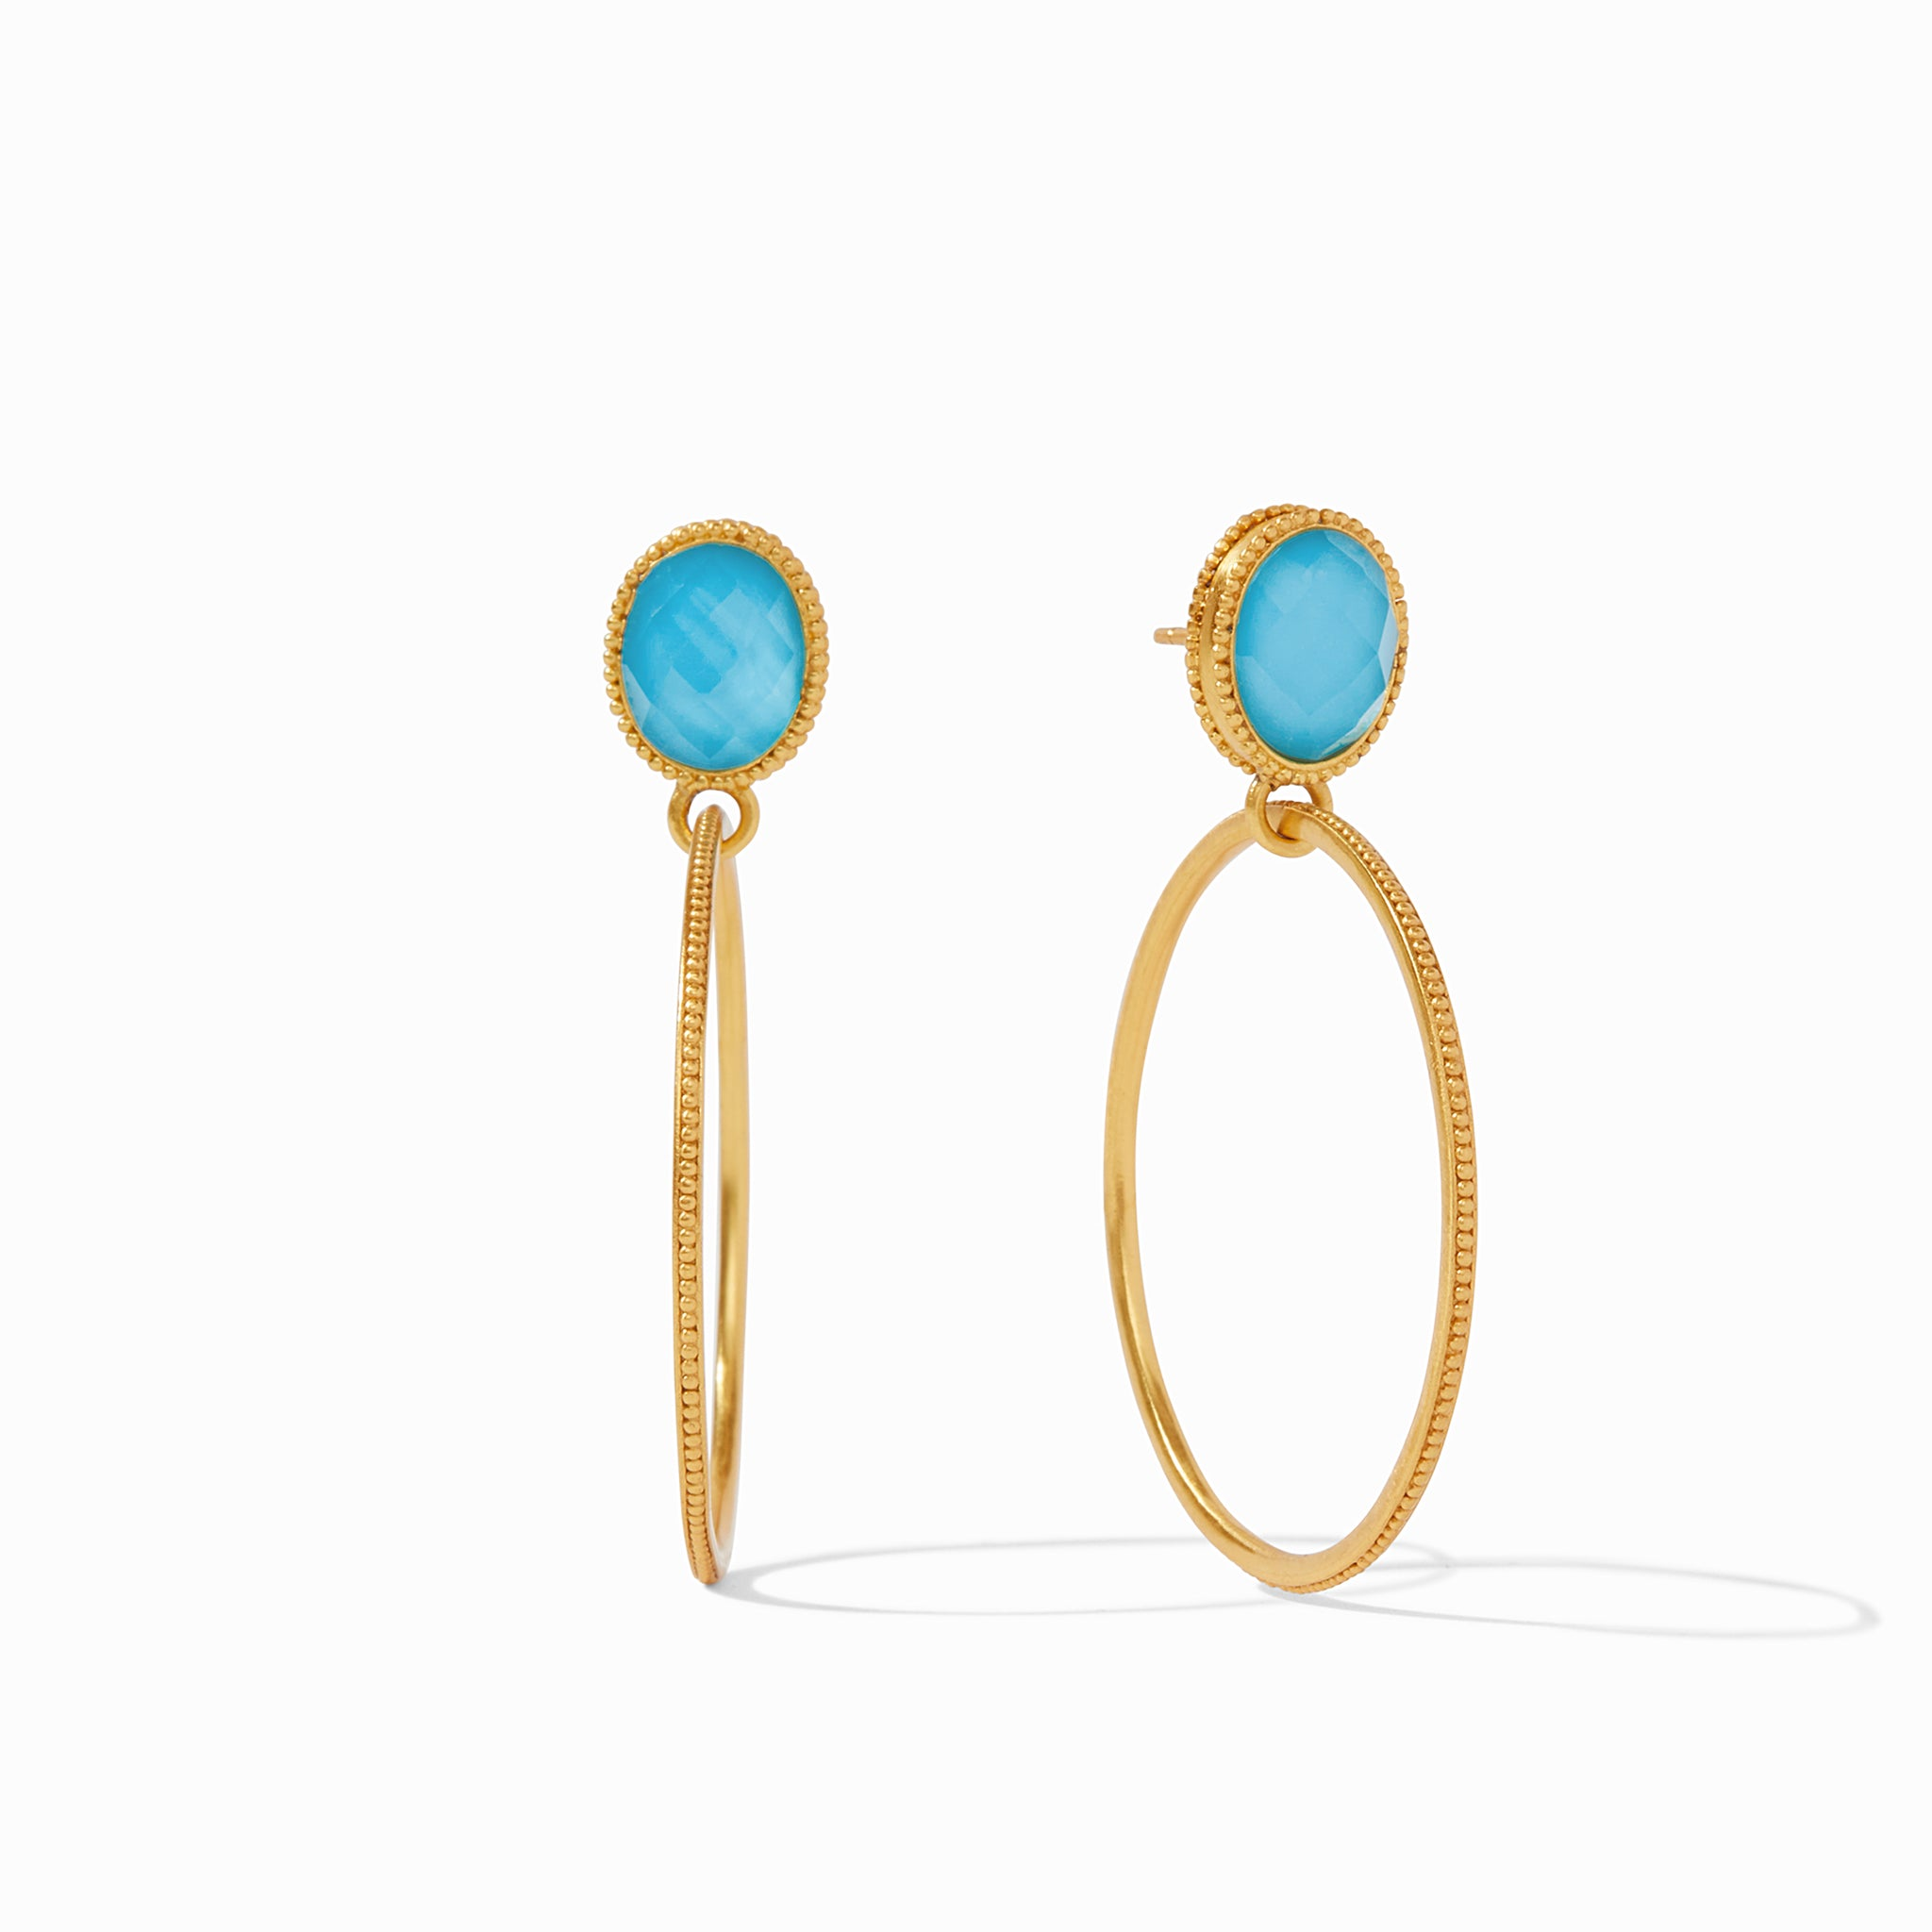 Iridescent Pacific Blue, Labor Day Looks, Pair Two, New Spring Jewels, into the blue